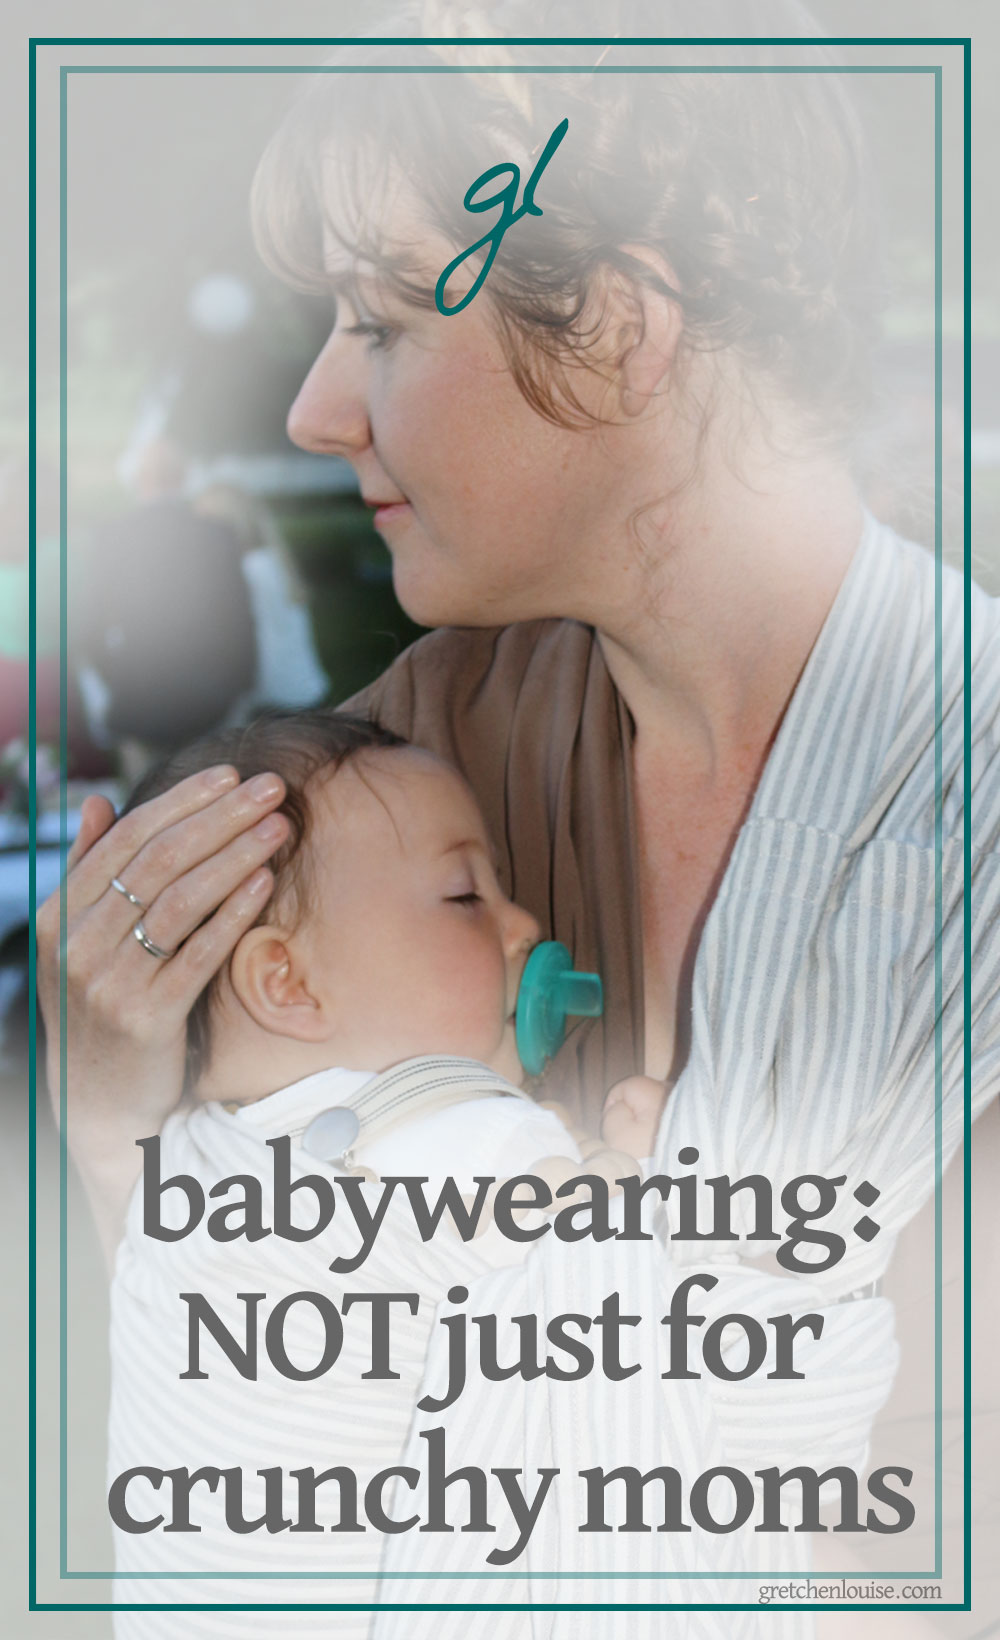 I thought babywearing was just for all-natural moms who practiced attachment parenting.I couldn't have been more wrong.I learned that babywearing transcends cultures and parenting styles. Babywearing is for every mom and dad (aunts and uncles, grandparents and babysitters, too!); it adapts to every family's needs. via @GretLouise